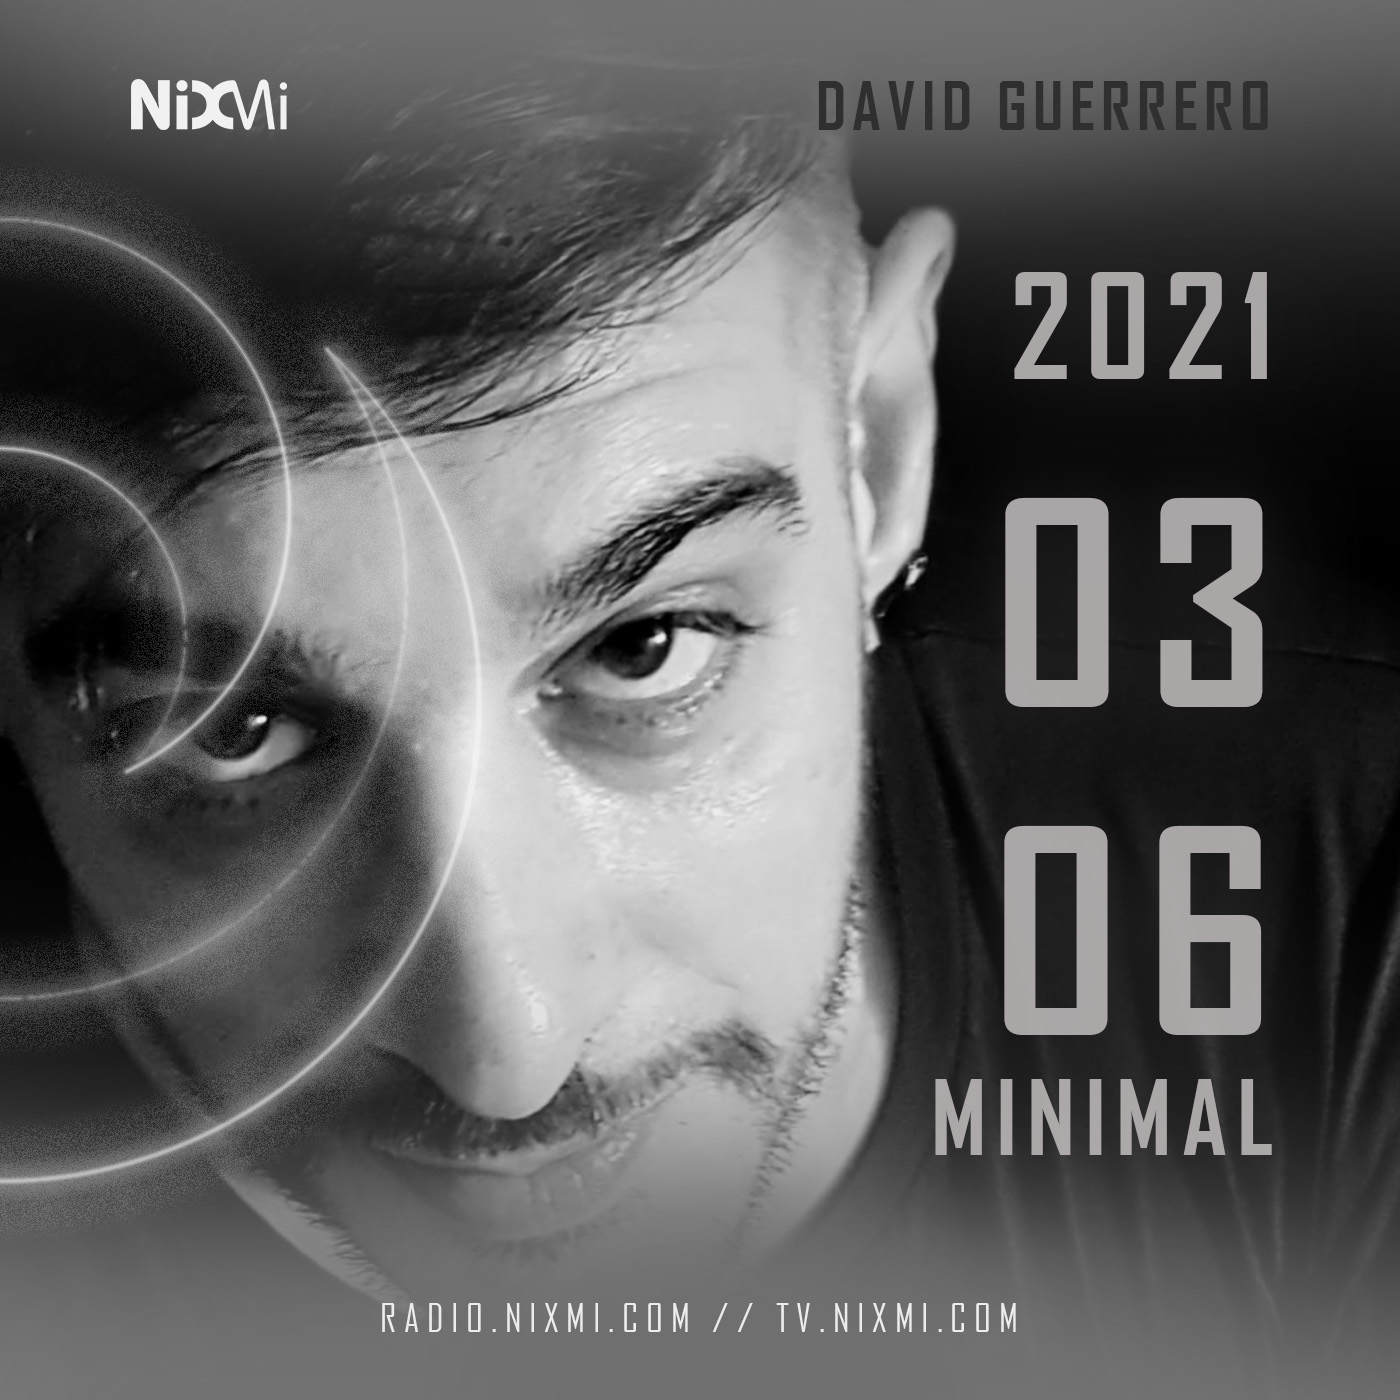 2021 – PODCAST DAVID GUERRERO NIXMI